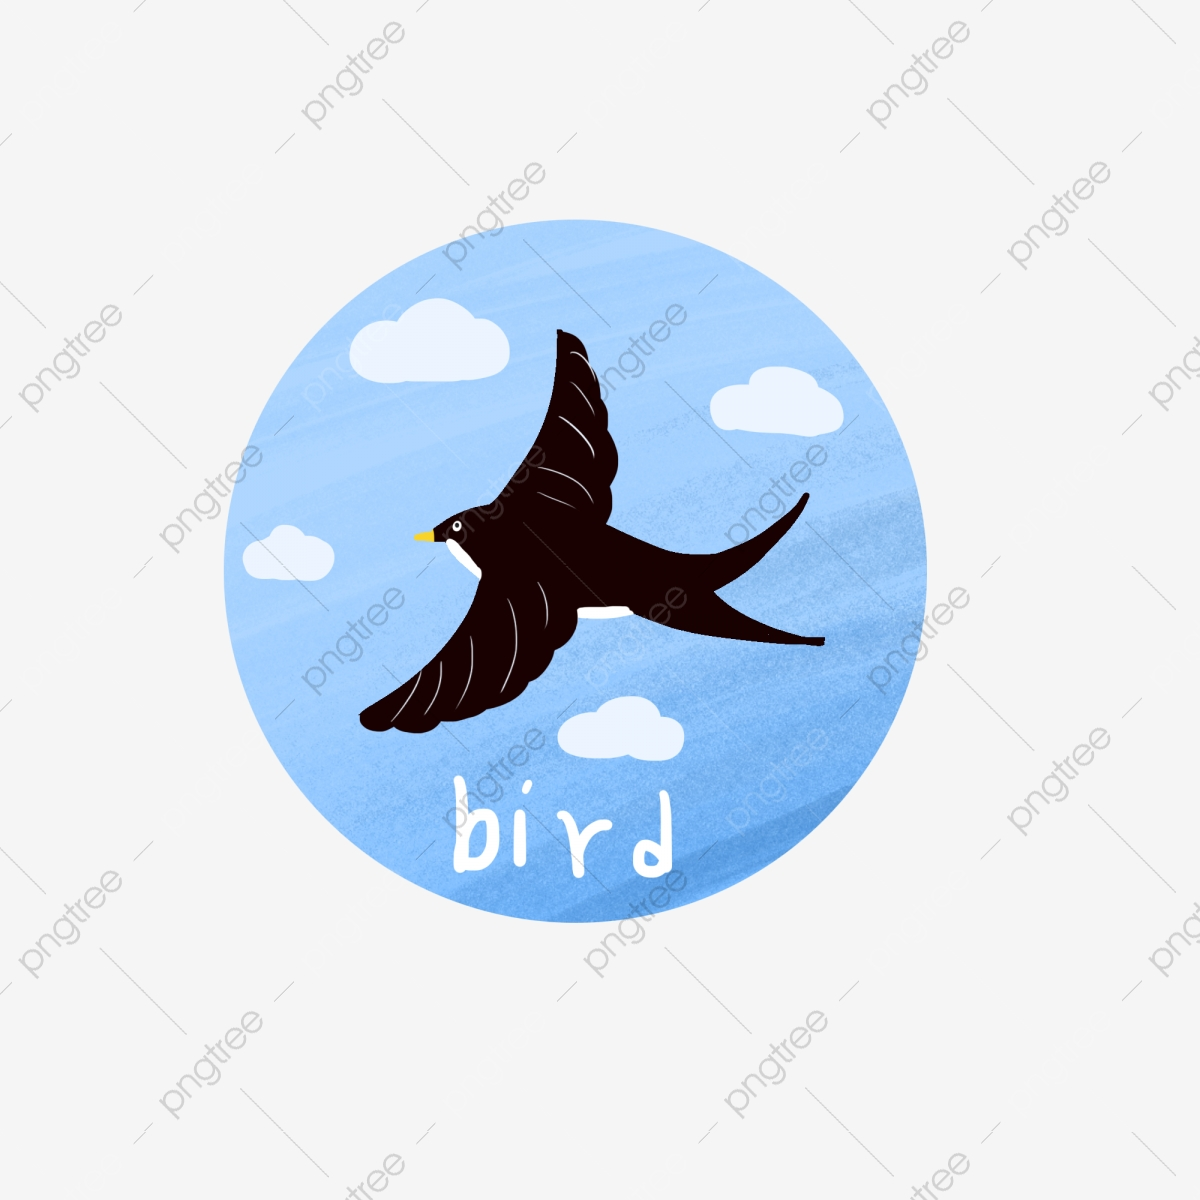 swallow logo picture swallow logo logo design logo png transparent clipart image and psd file for free download pngtree